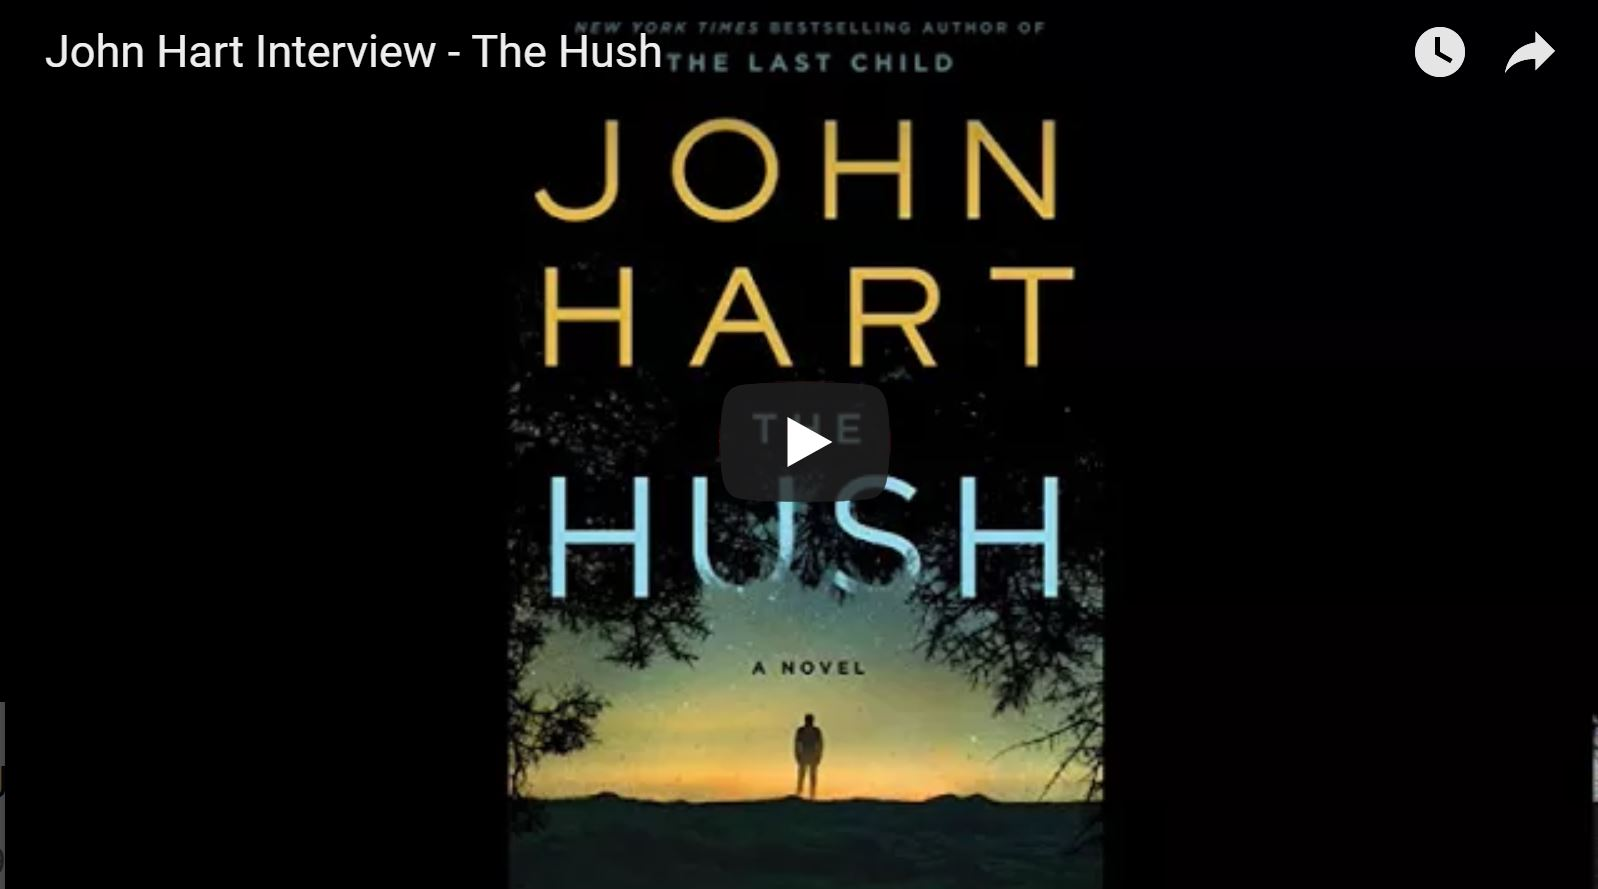 Interview with John Hart